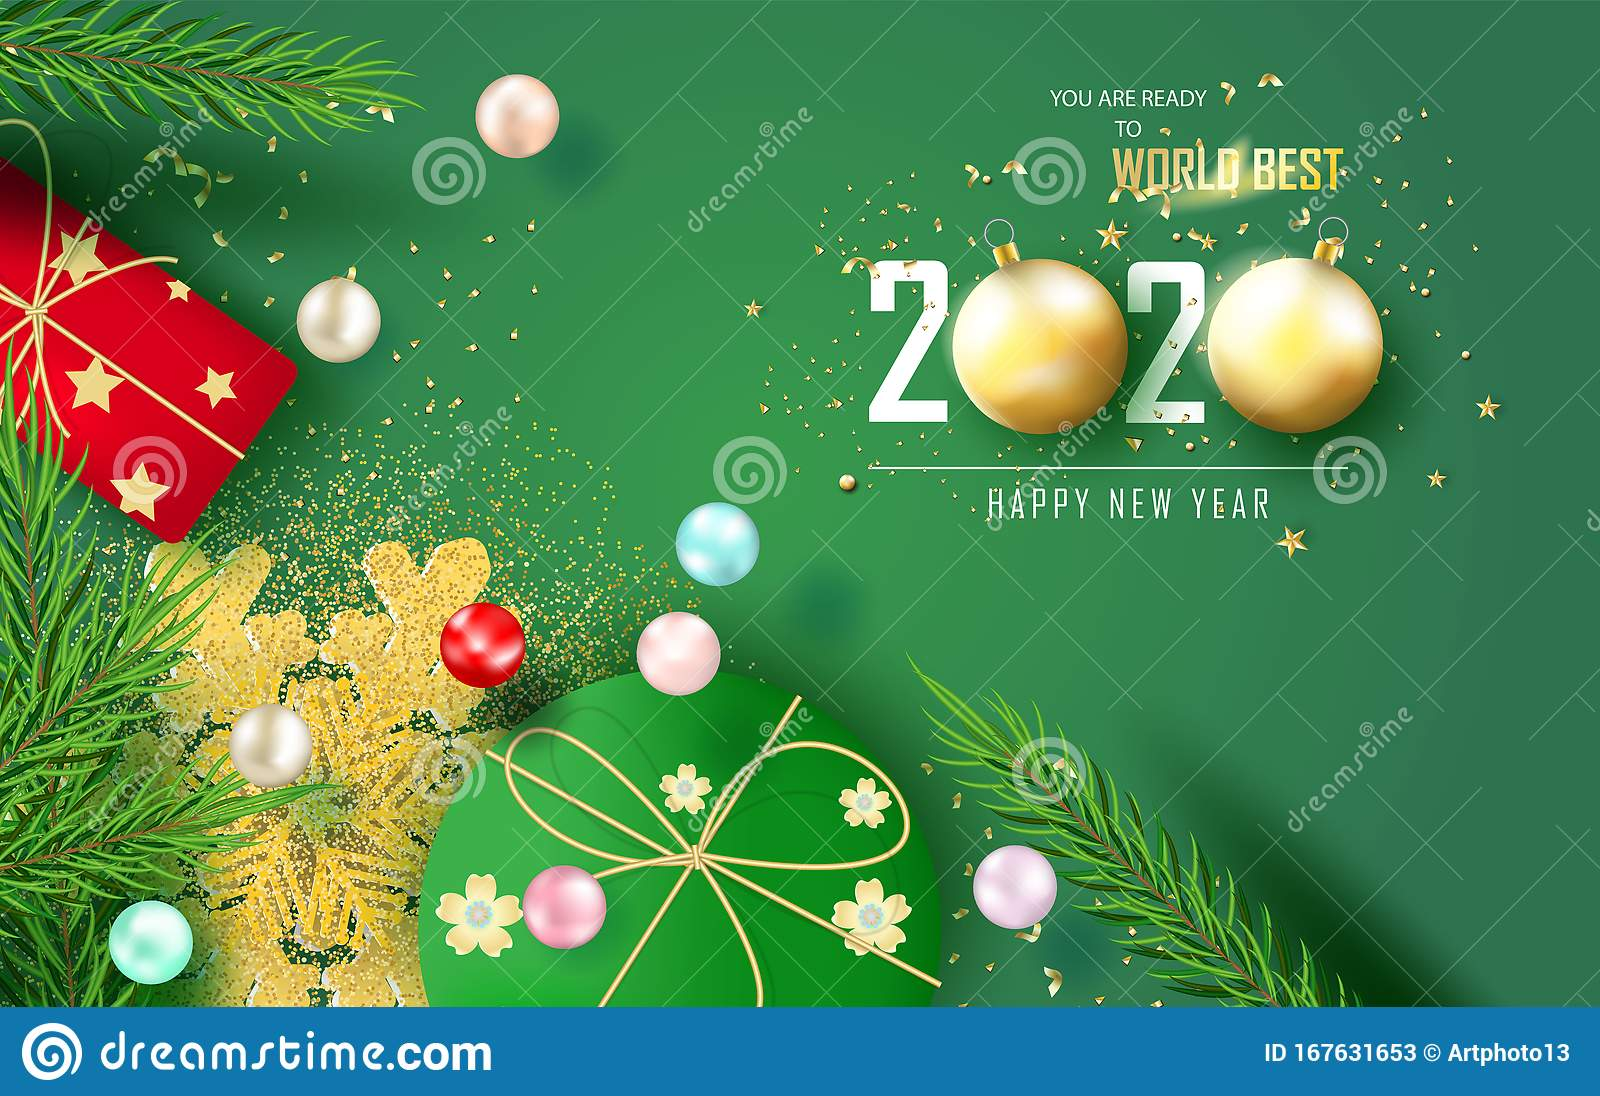 Merry Christmas And Happy New Year Green And Cream 2020 Top View Merry Christmas Tree Pine And New Year Horizontal Banner